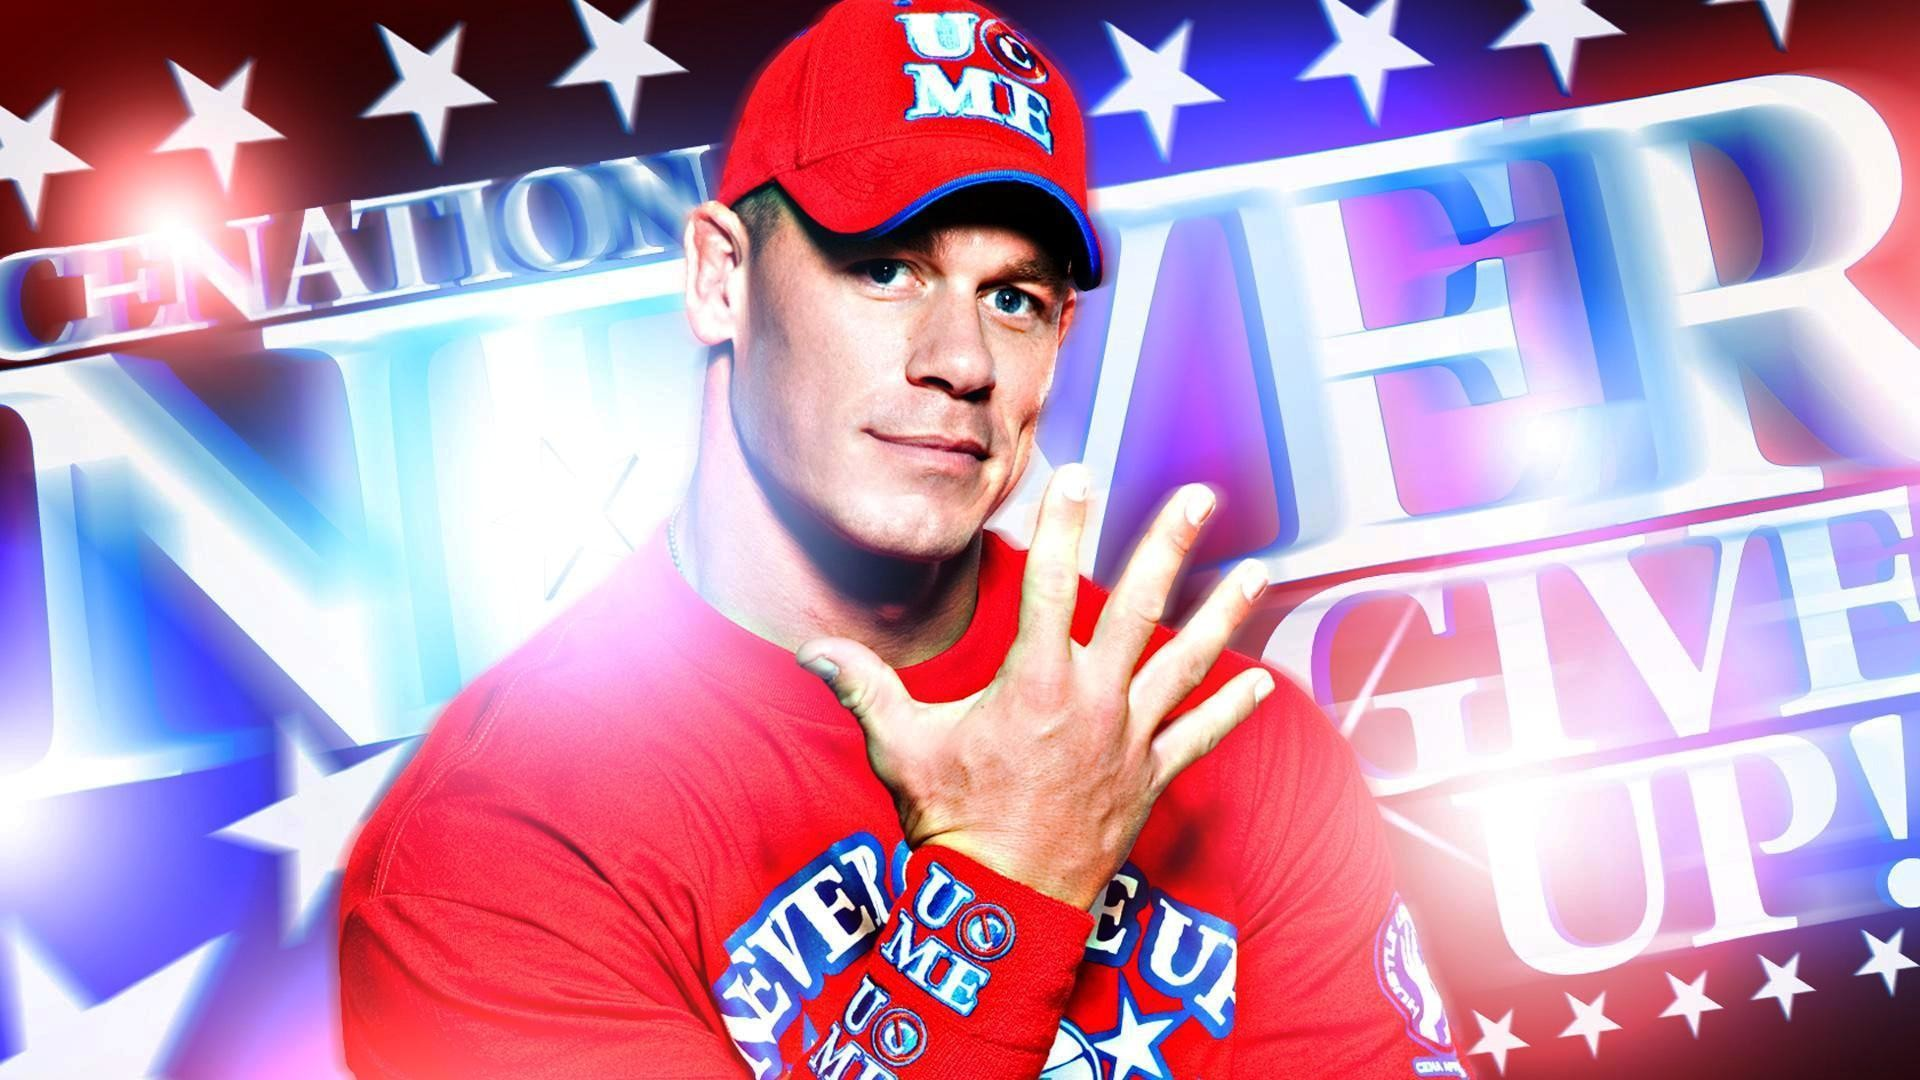 1920x1080 John-Cena-Desktop-Wallpaper | Hd Wallpapers